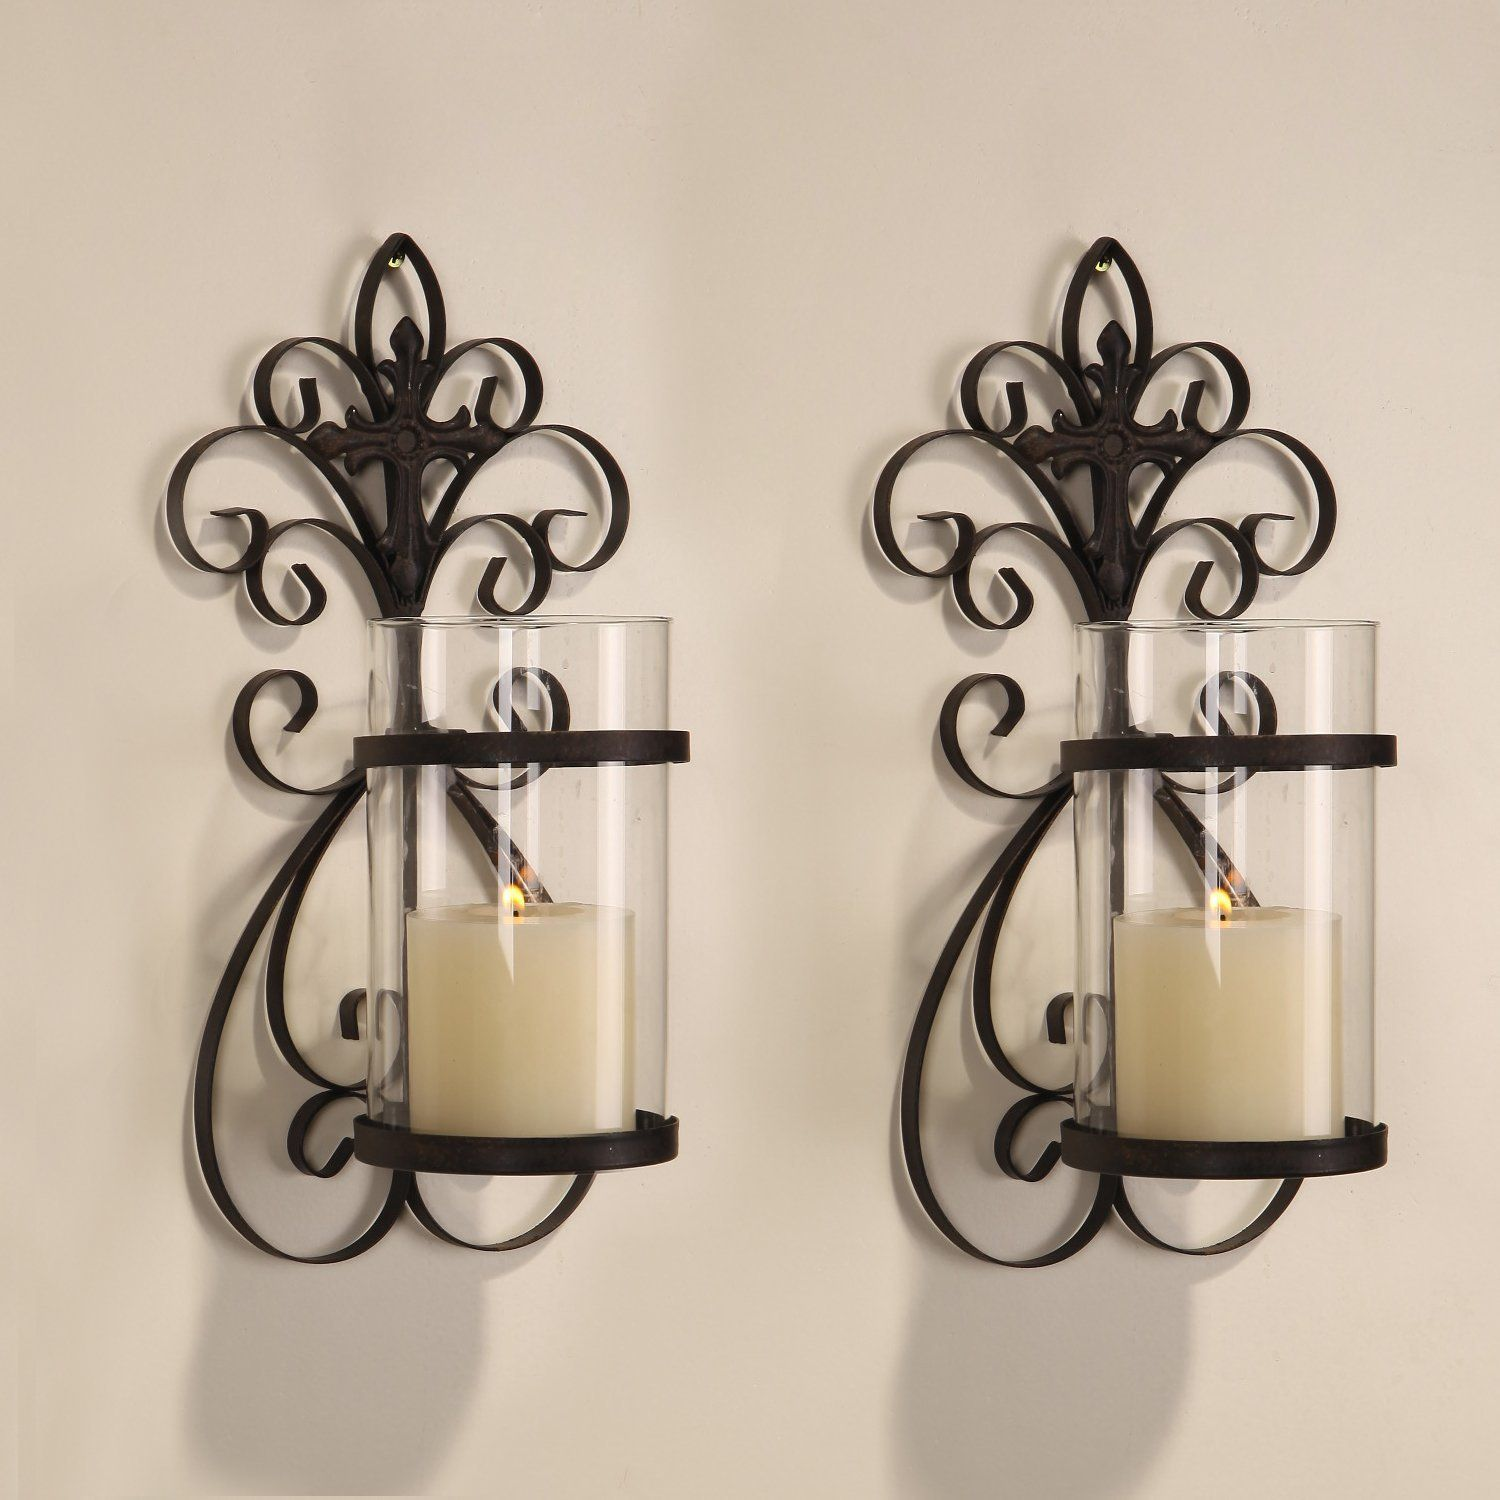 Adeco Iron And Gl Vertical Wall Hanging Candle Holder Sconce Hd0005